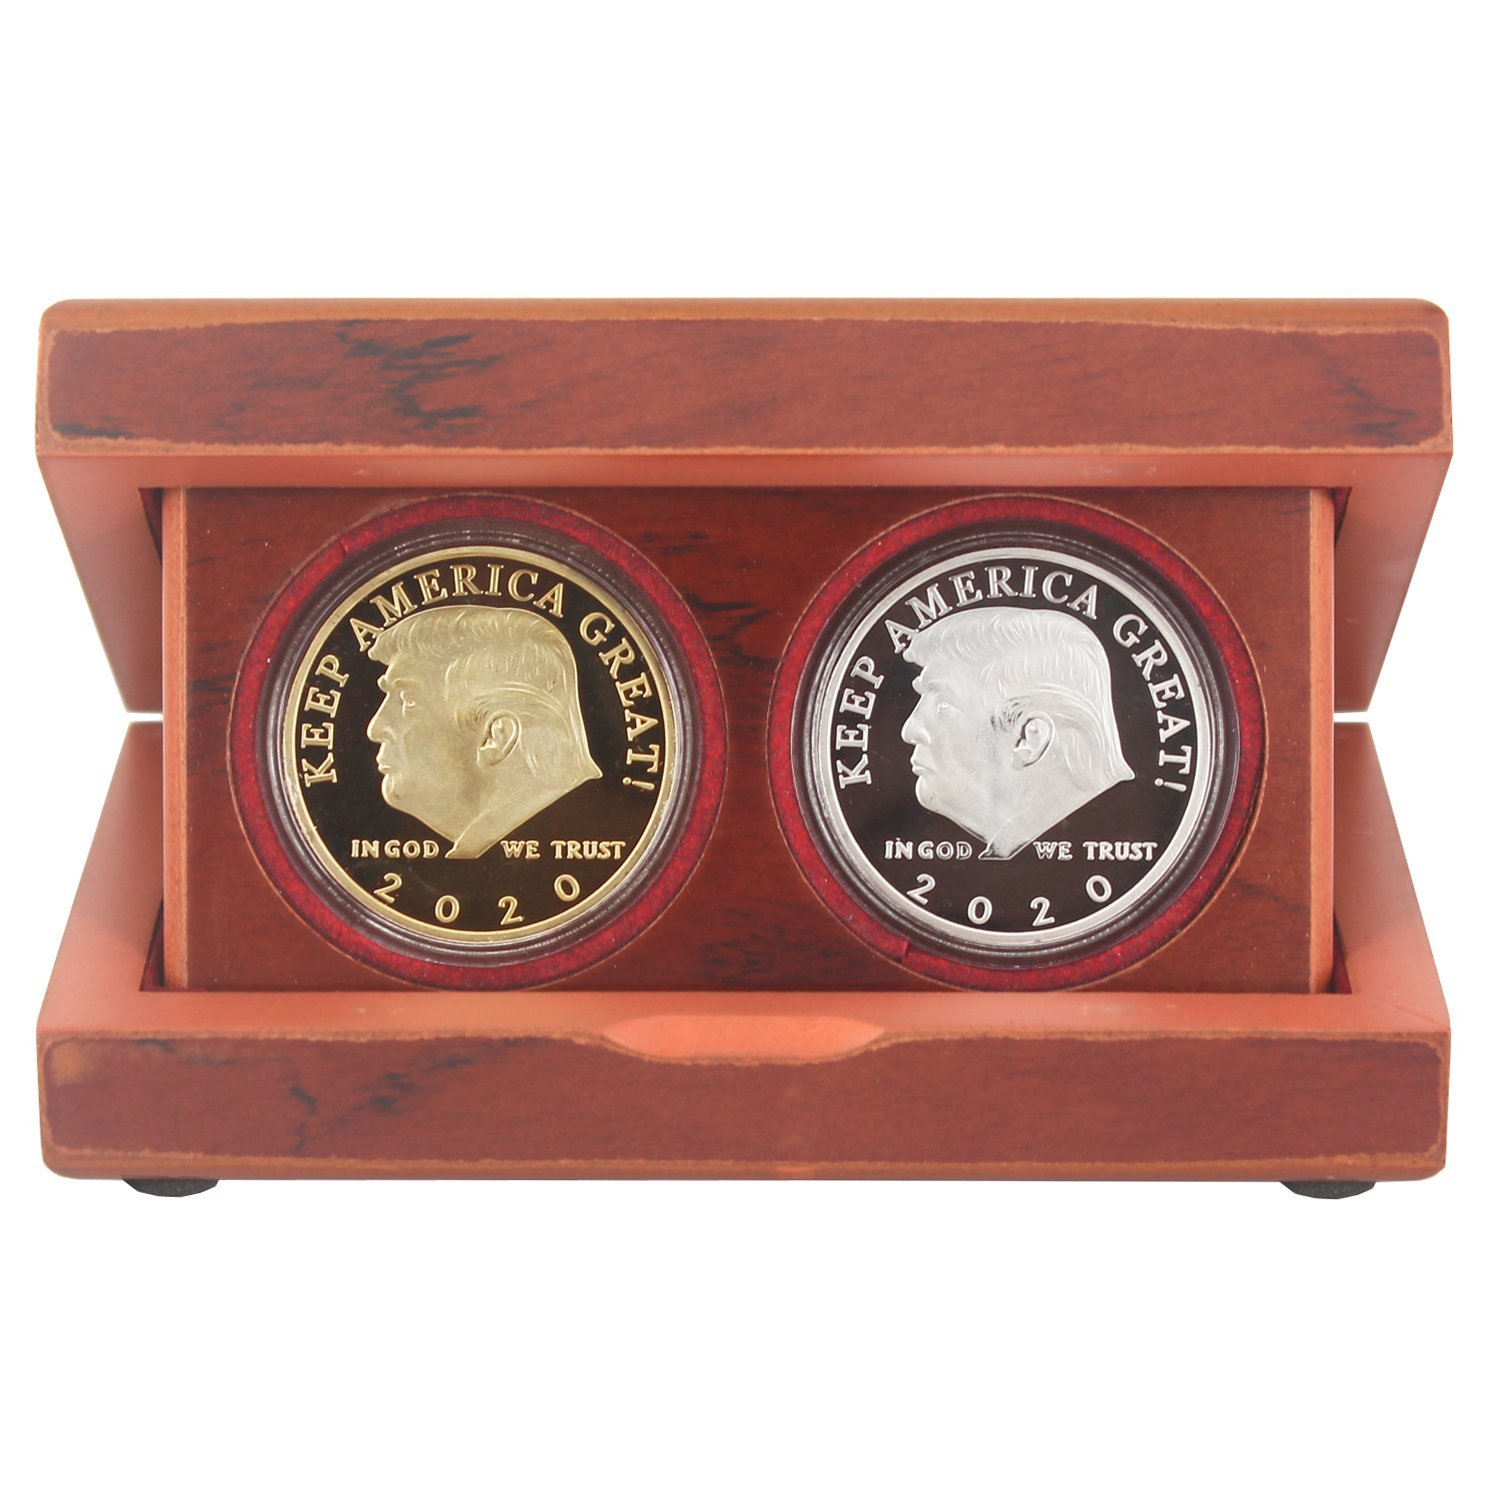 2020 Keep America Great Challenge Coin Wooden Storage and Display Case, Laser Engraving Gold Coloring, with Gold and Silver Coin for Commemorative Collectors